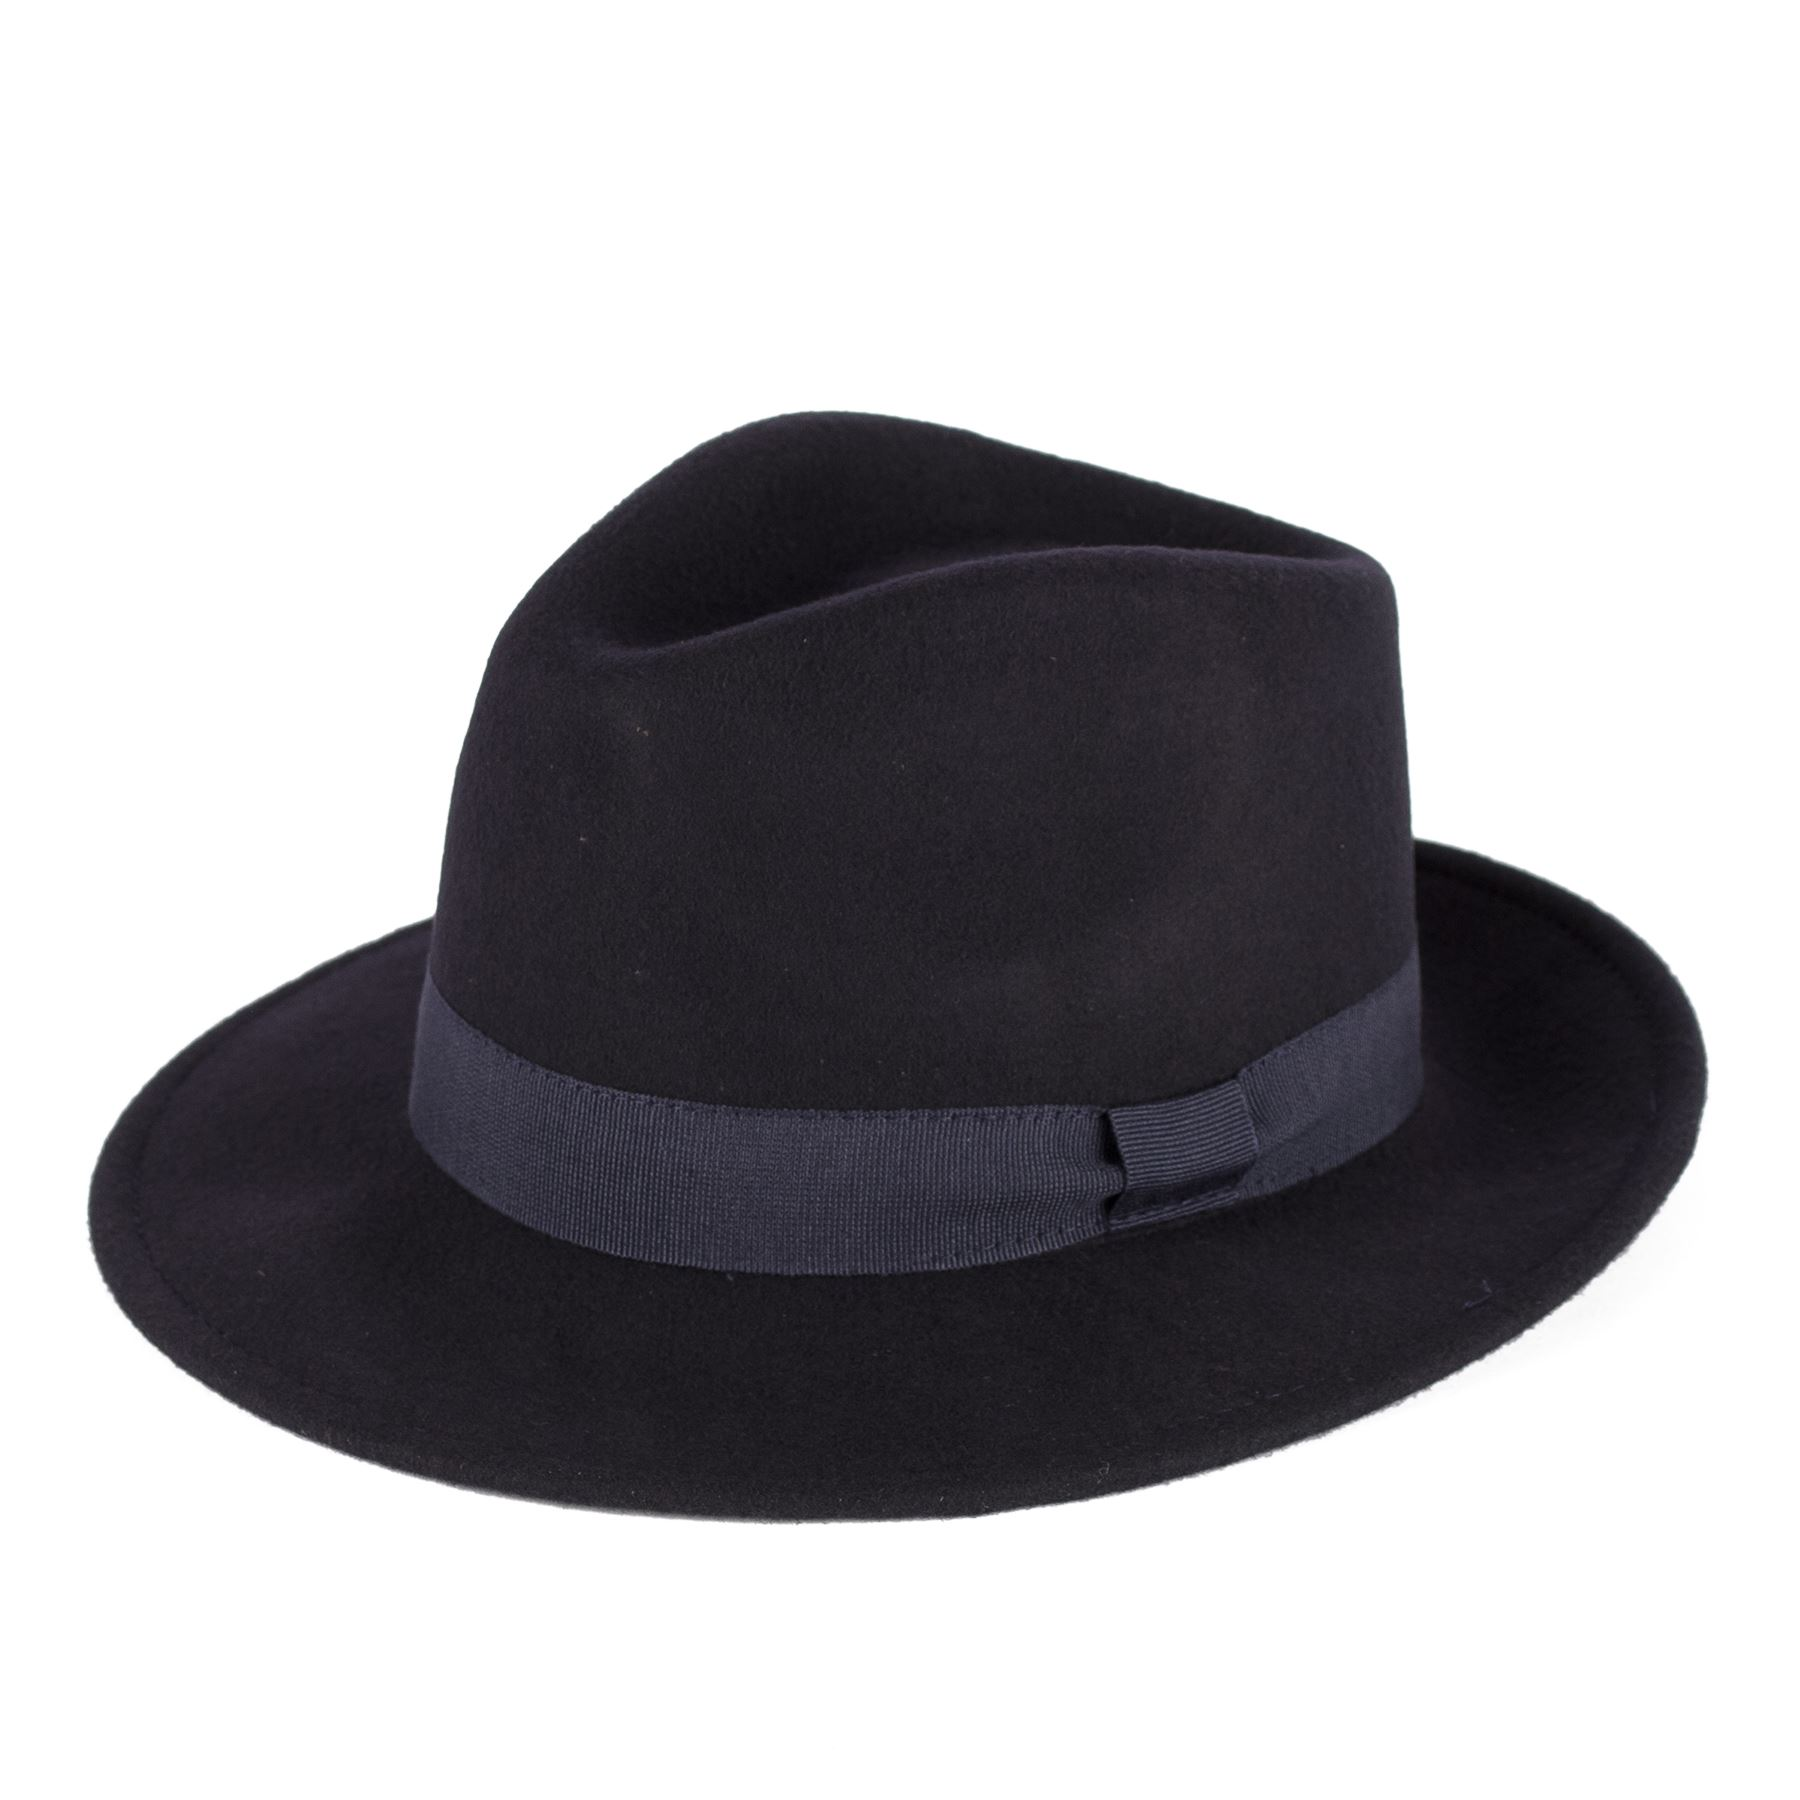 Mens Ladies Fedora Hat 100 Wool Felt Made in Italy Handmade With ... 33633d9f0a1c